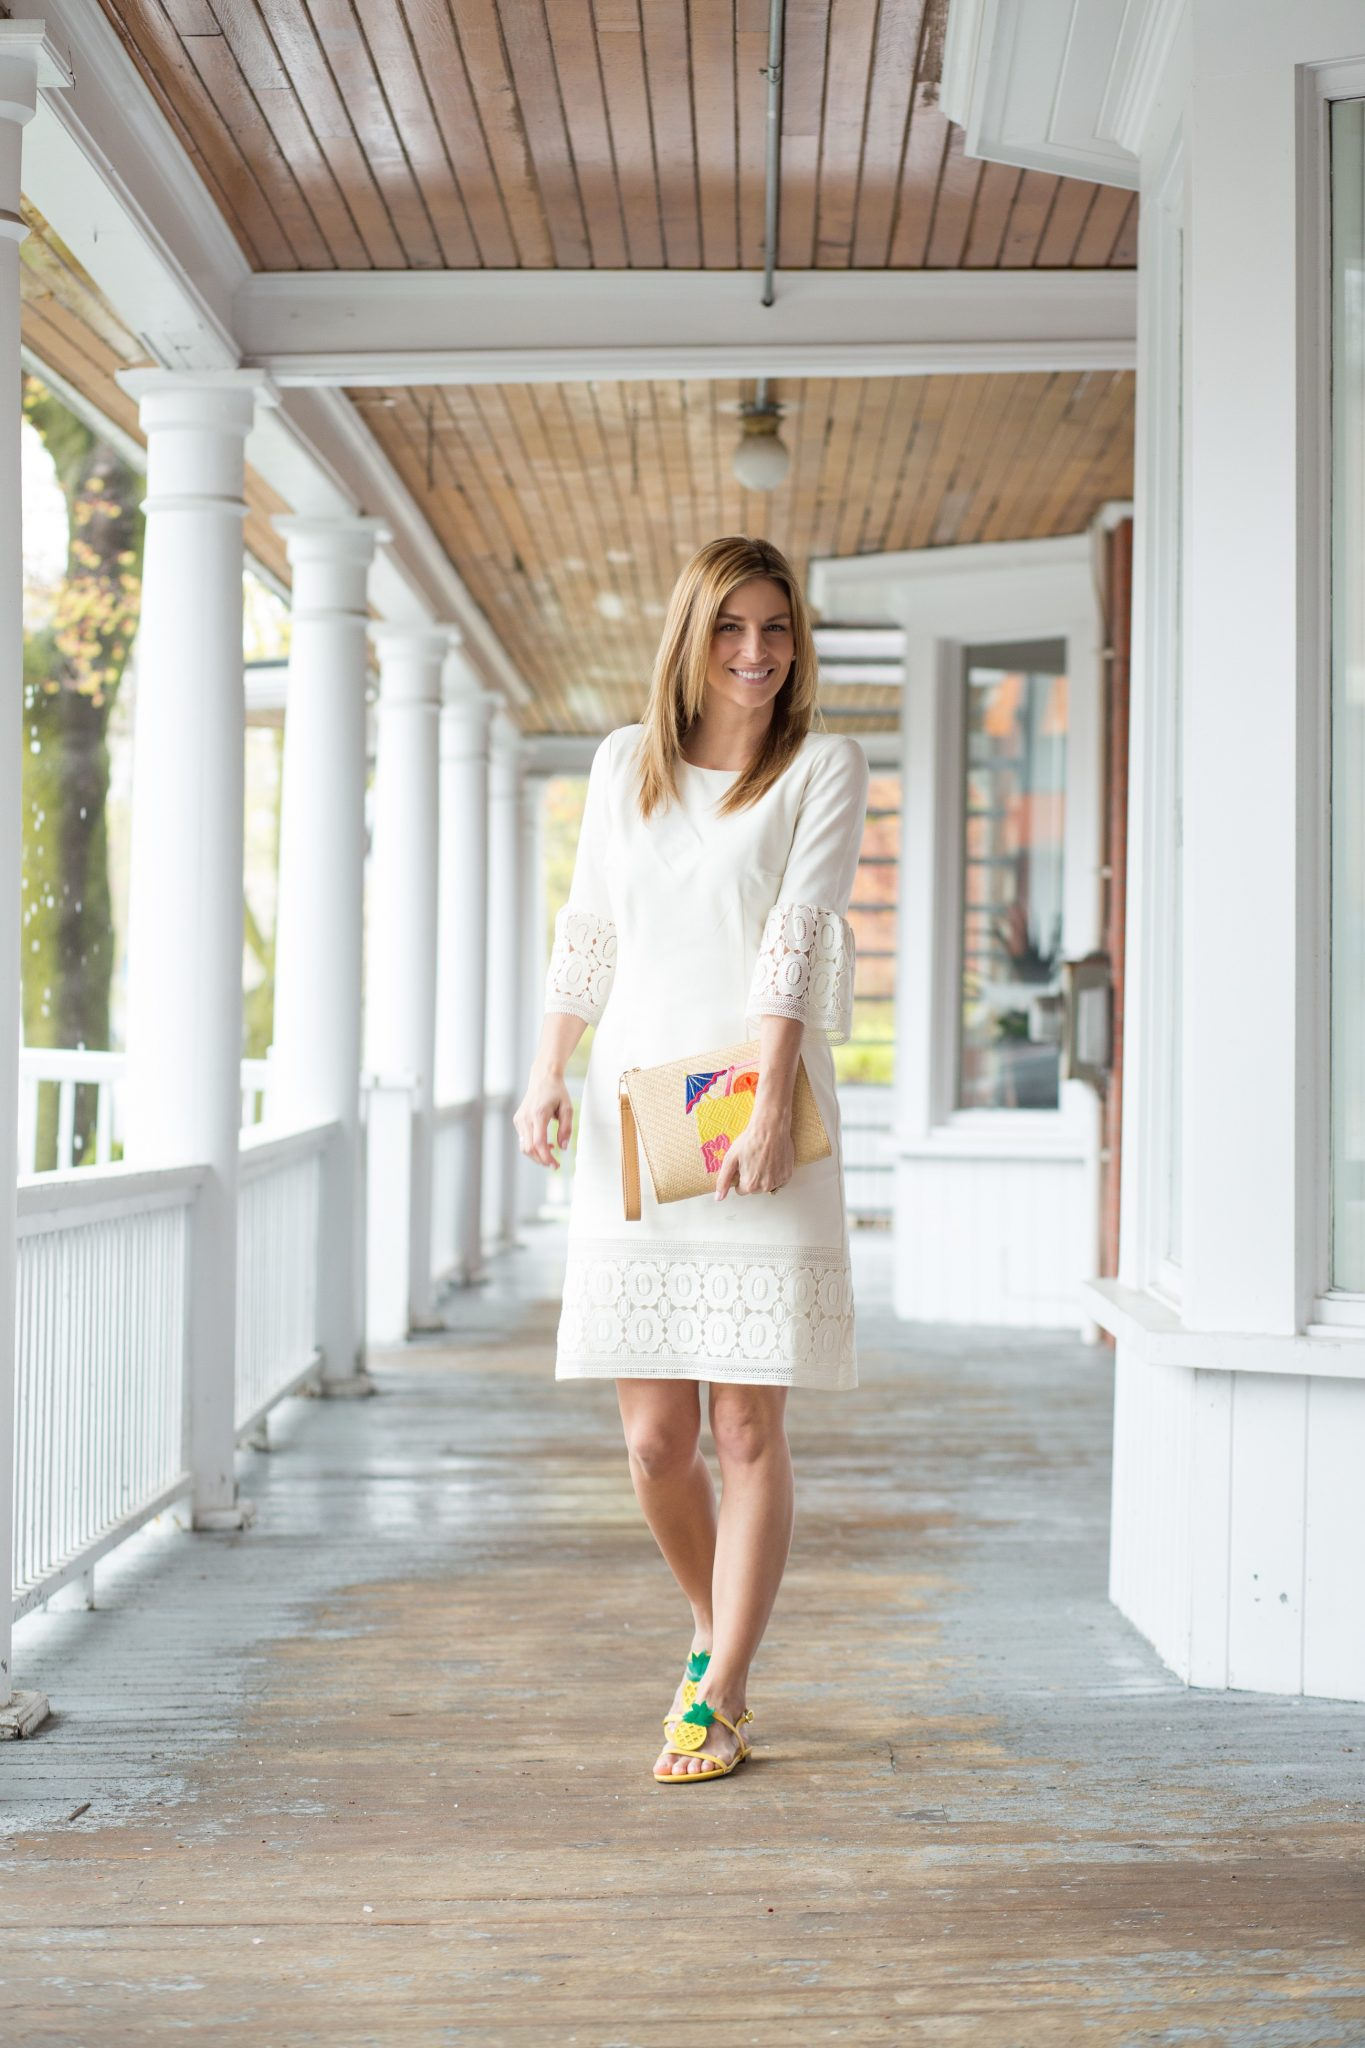 sparkleshinylove Flounce Sleeve Ponte and Lace Sheath Dress, Mai Tai Pouch and Pineapple Sandals all from Talbots